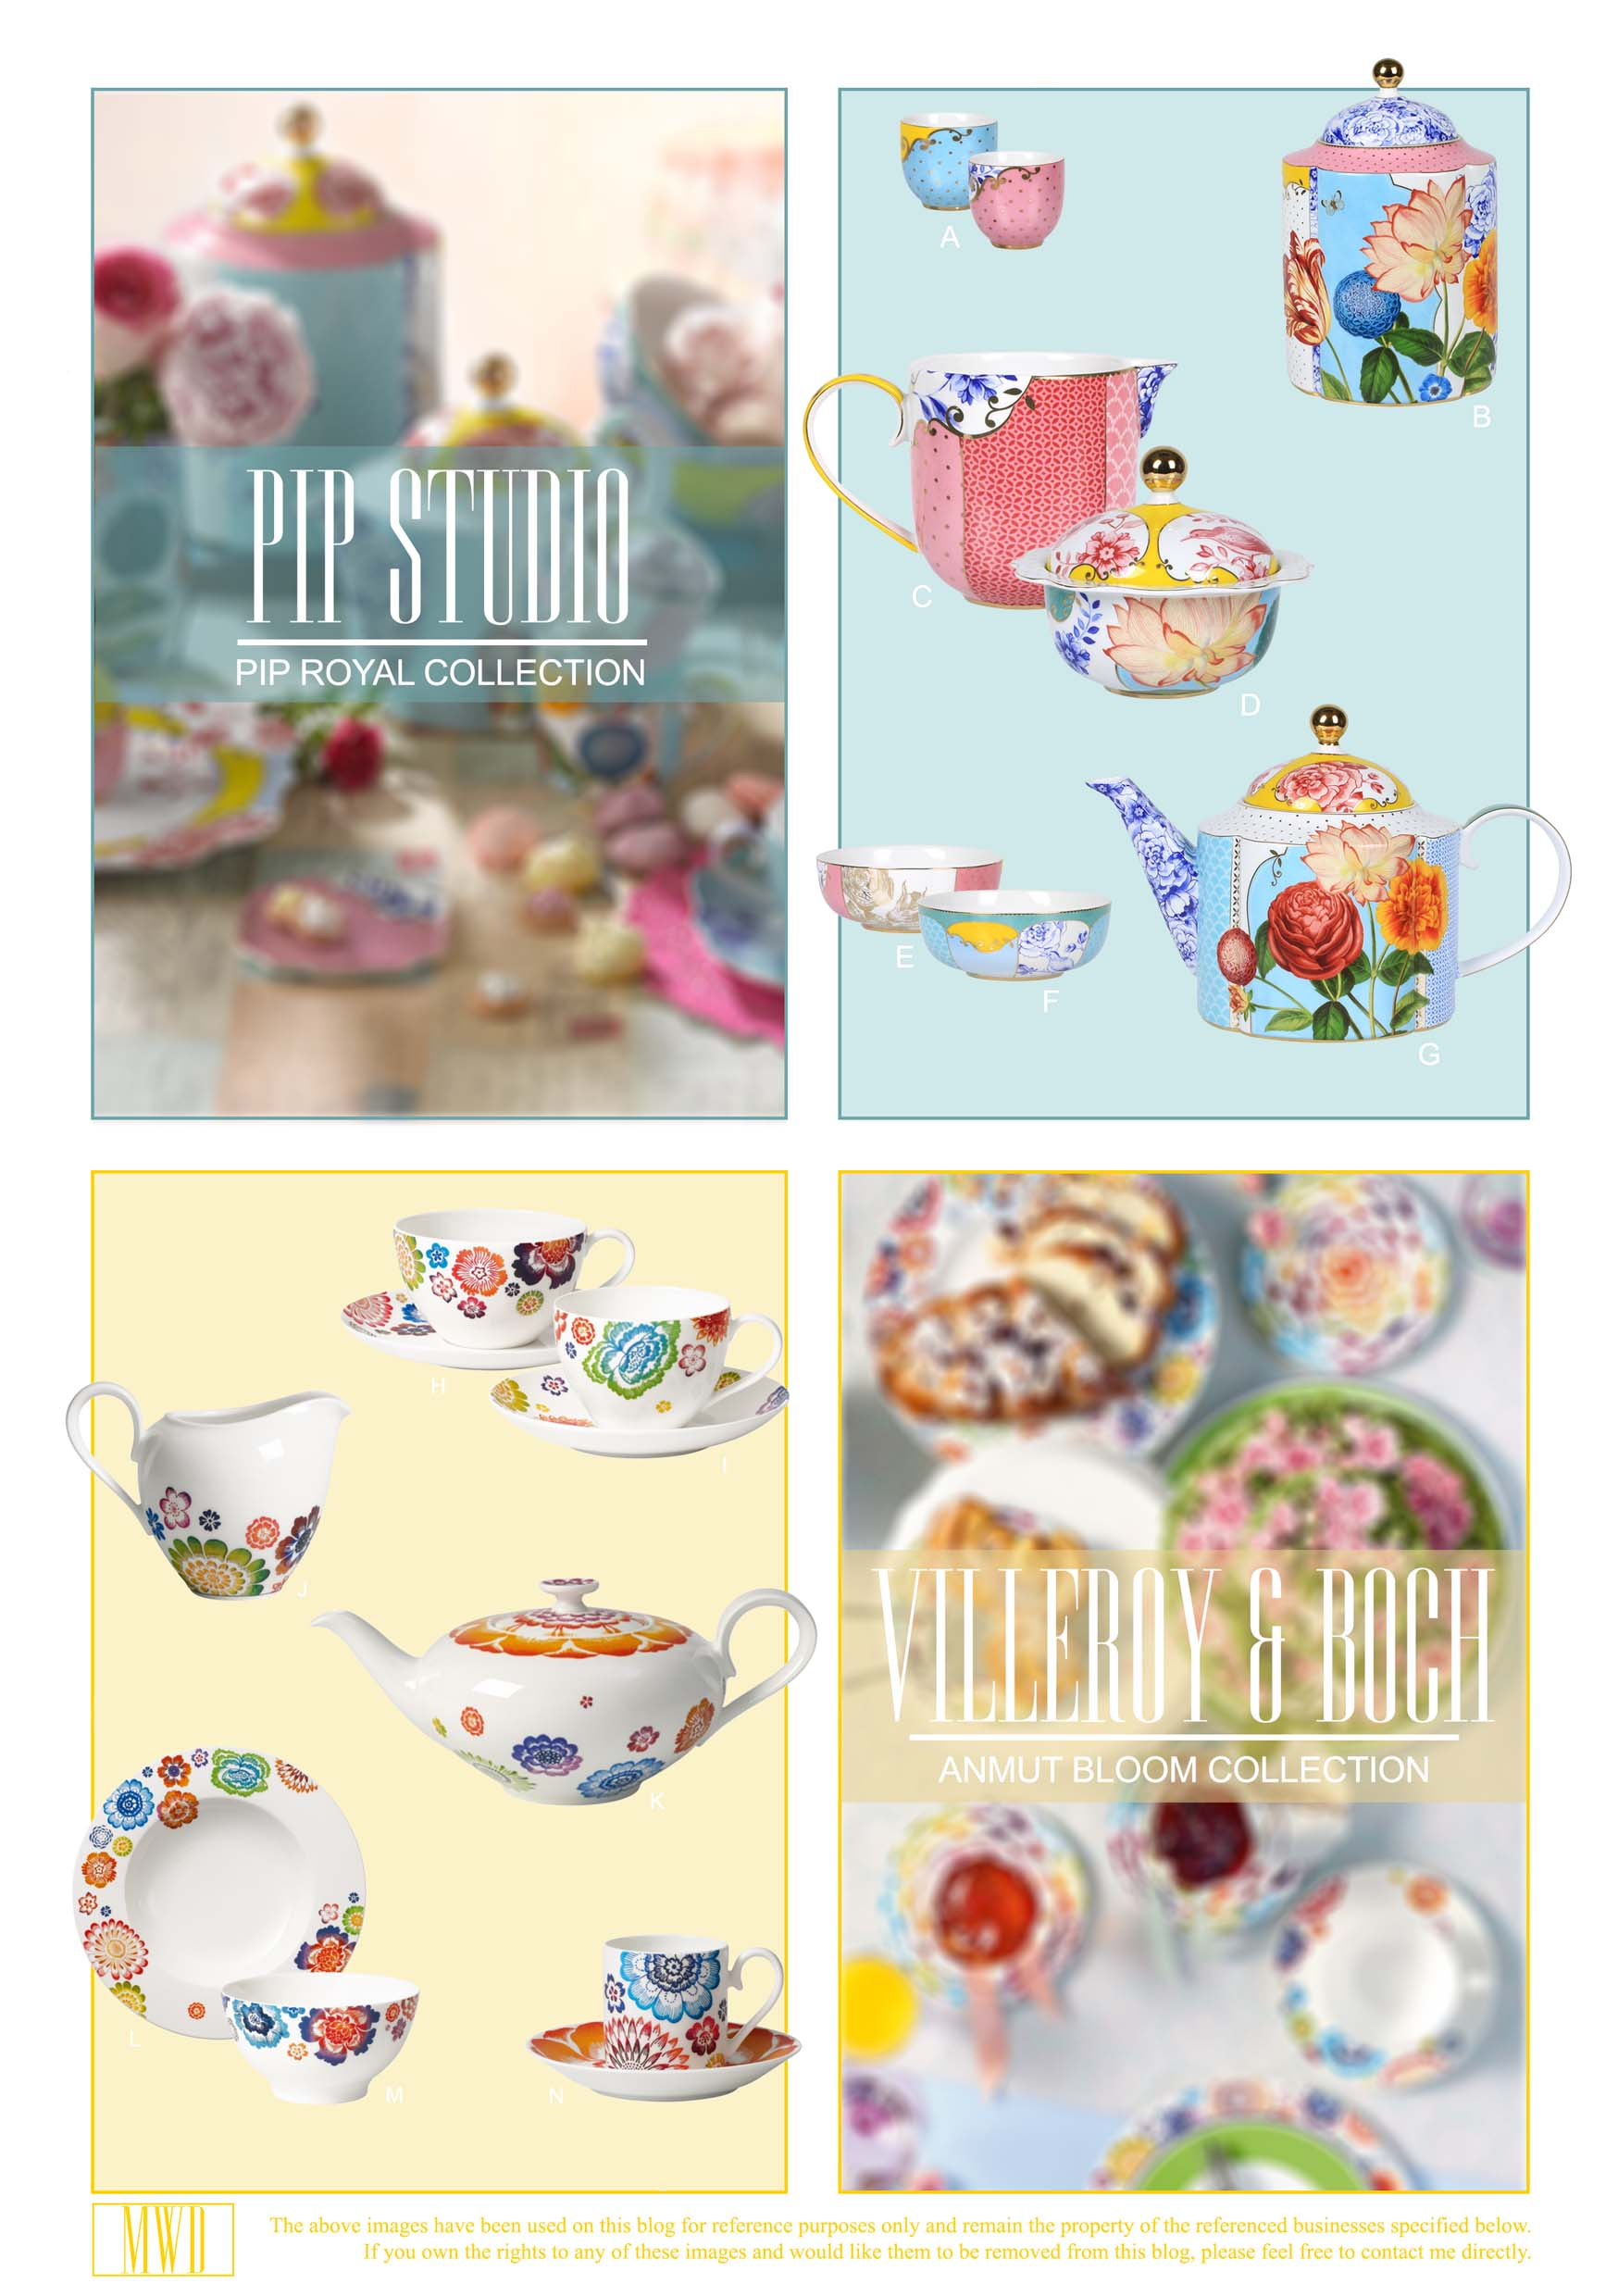 Pip Studio and Villeroy & Boch Teaware collections